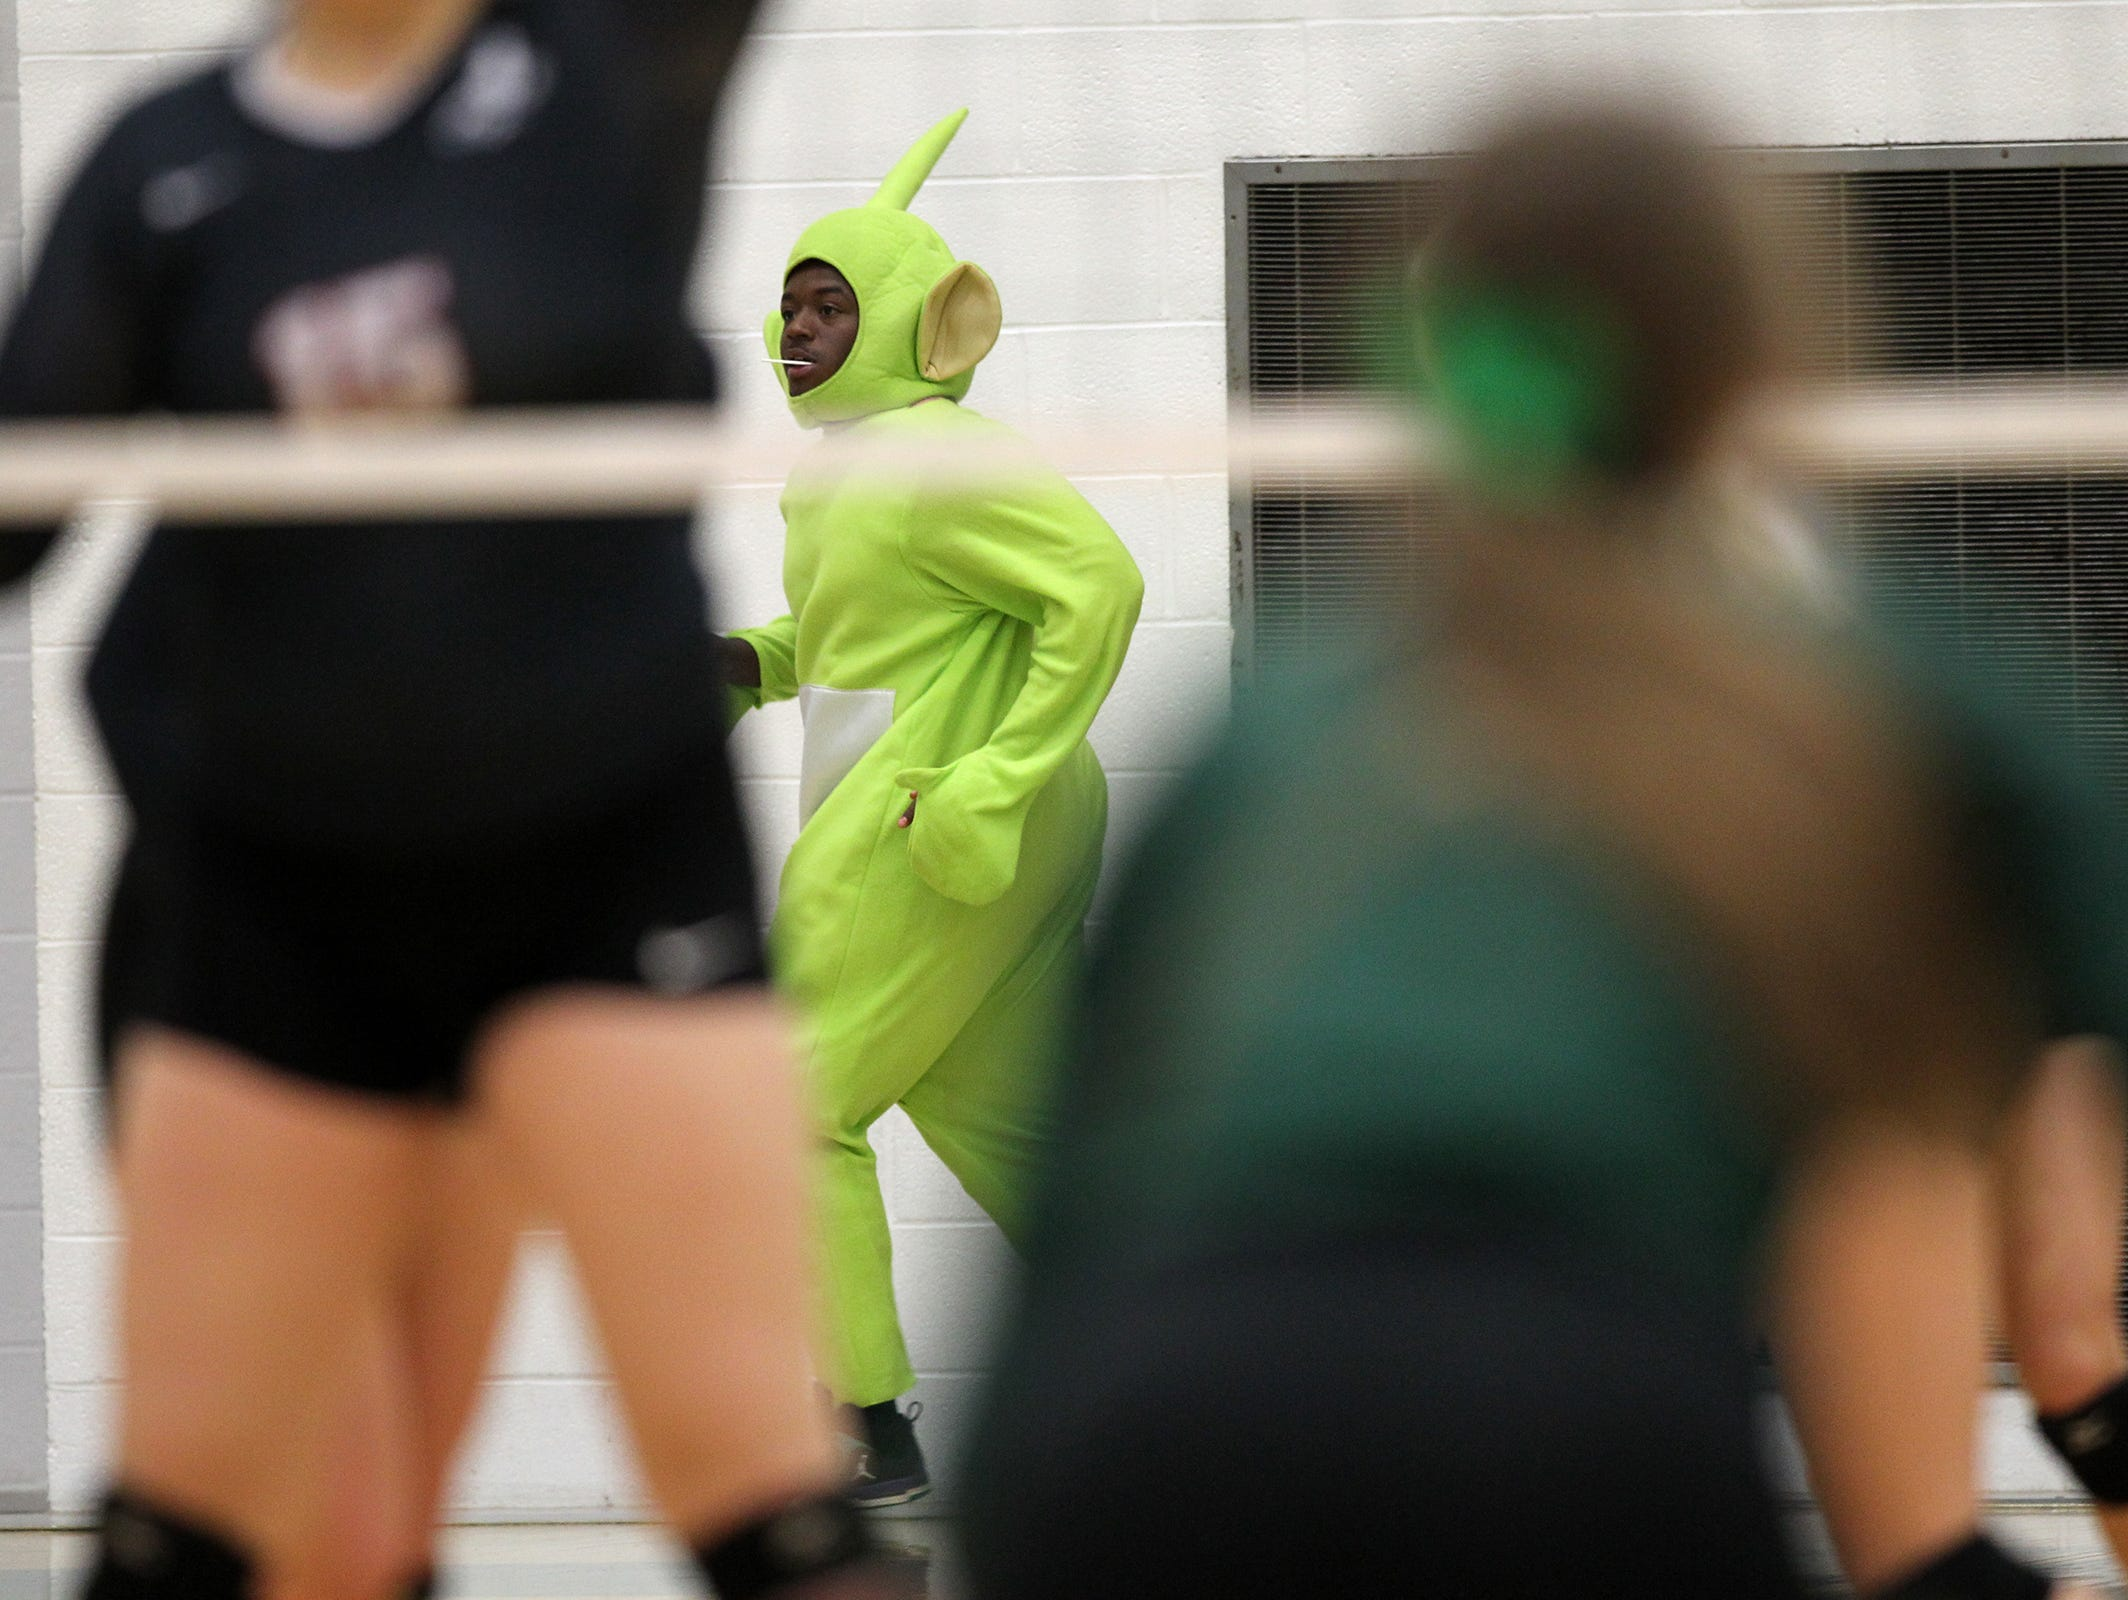 West High junior Khalloe Jordan runs back to the bleachers during the Women of Troy's regional semifinal game against City High at West High on Thursday, Oct. 29, 2015.